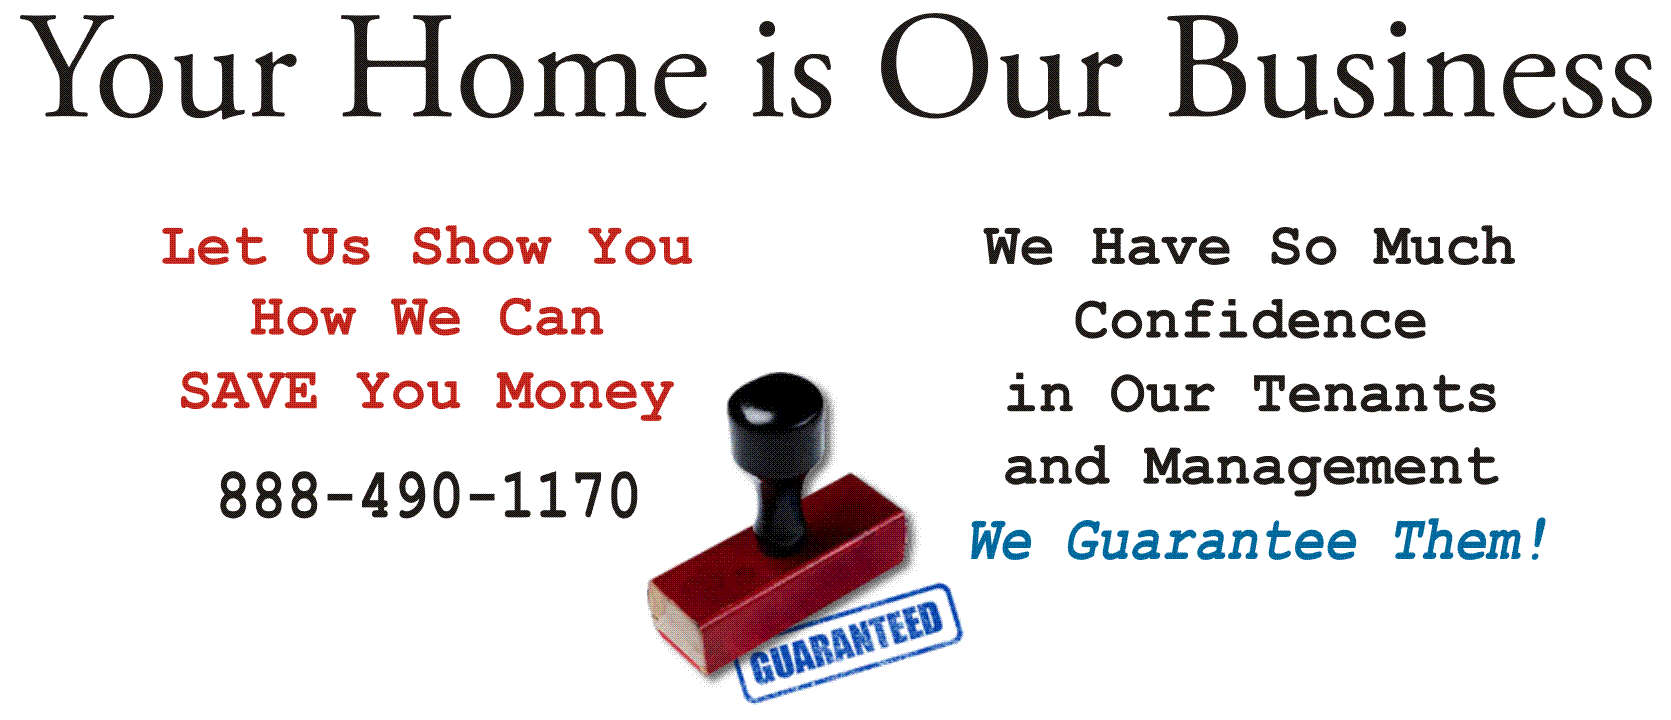 Your Home Is Our Business